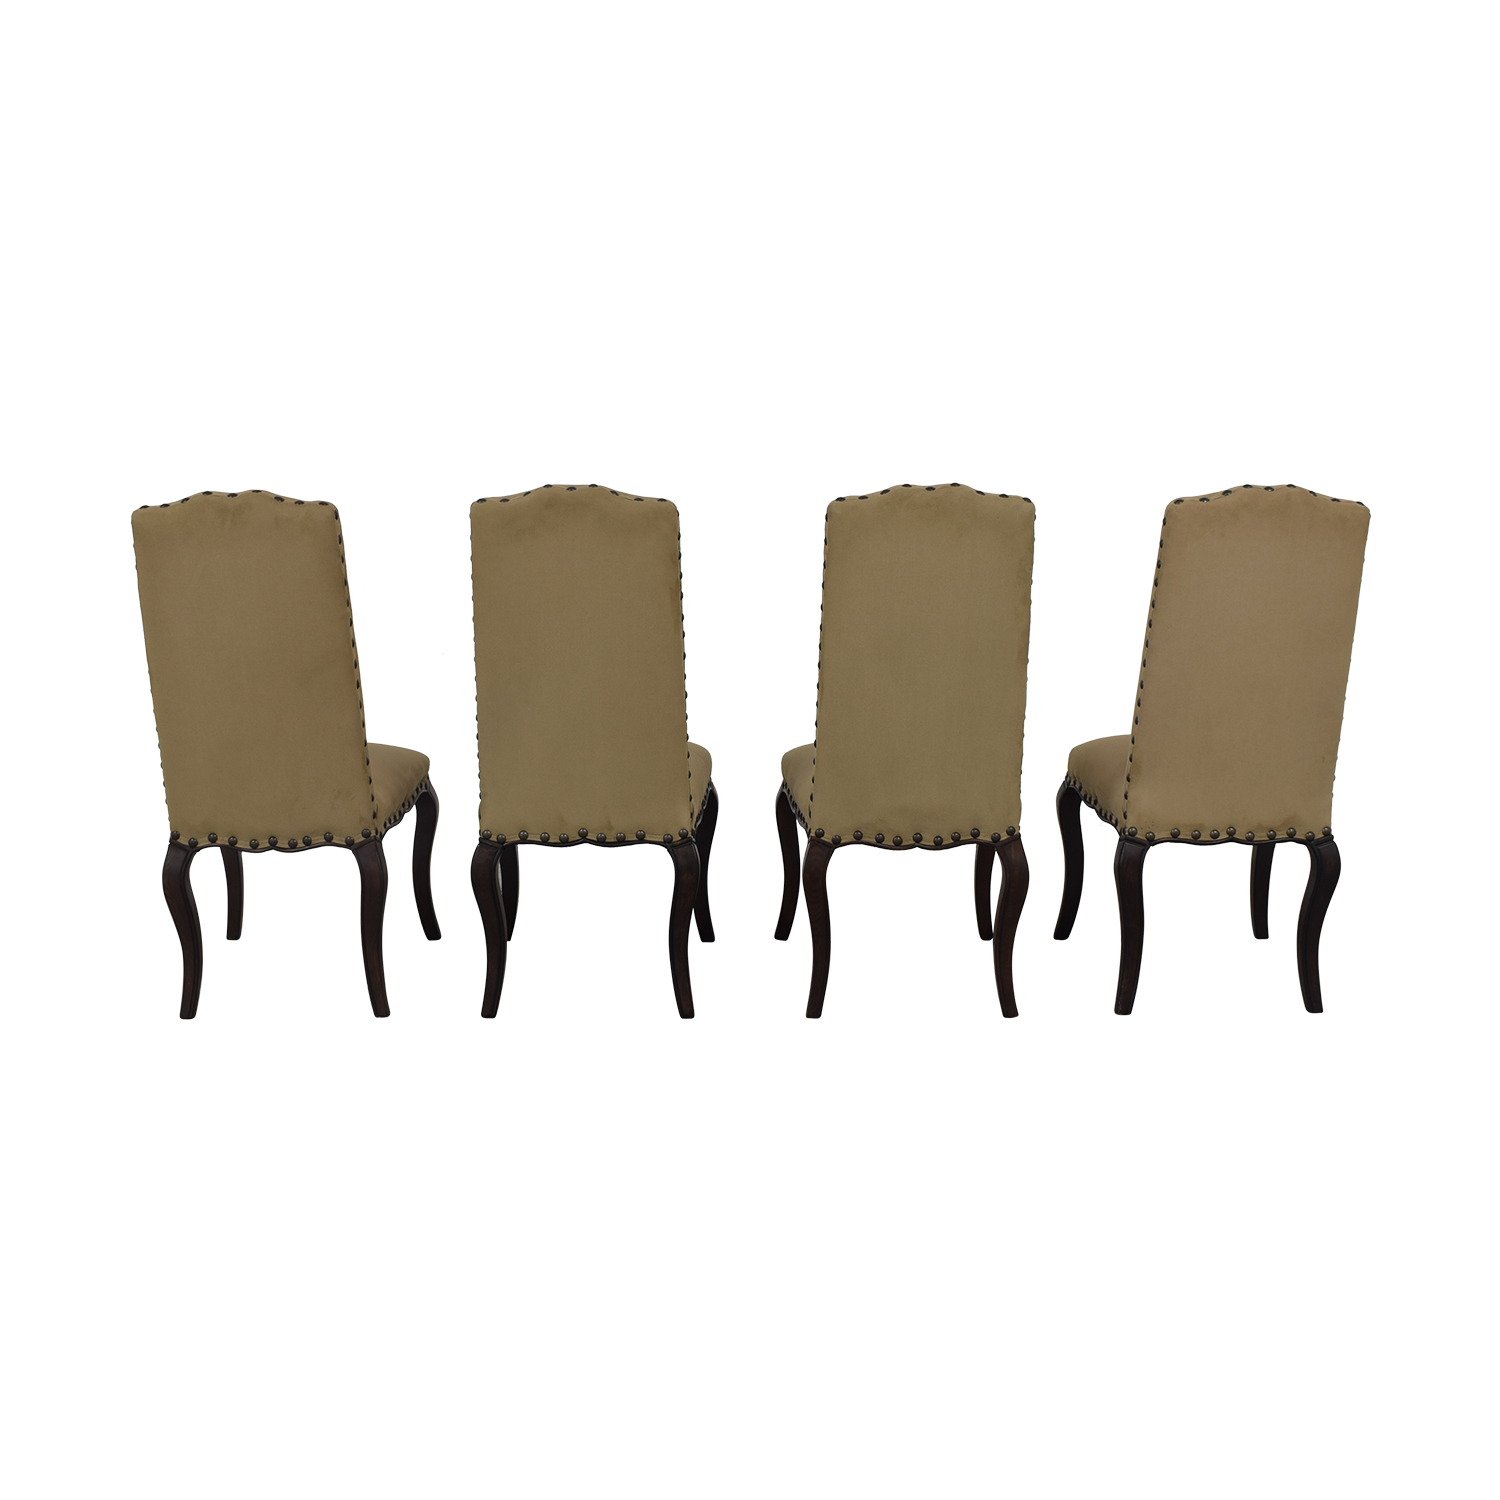 Pottery Barn Pottery Barn Calais Dining Chairs tan and brown